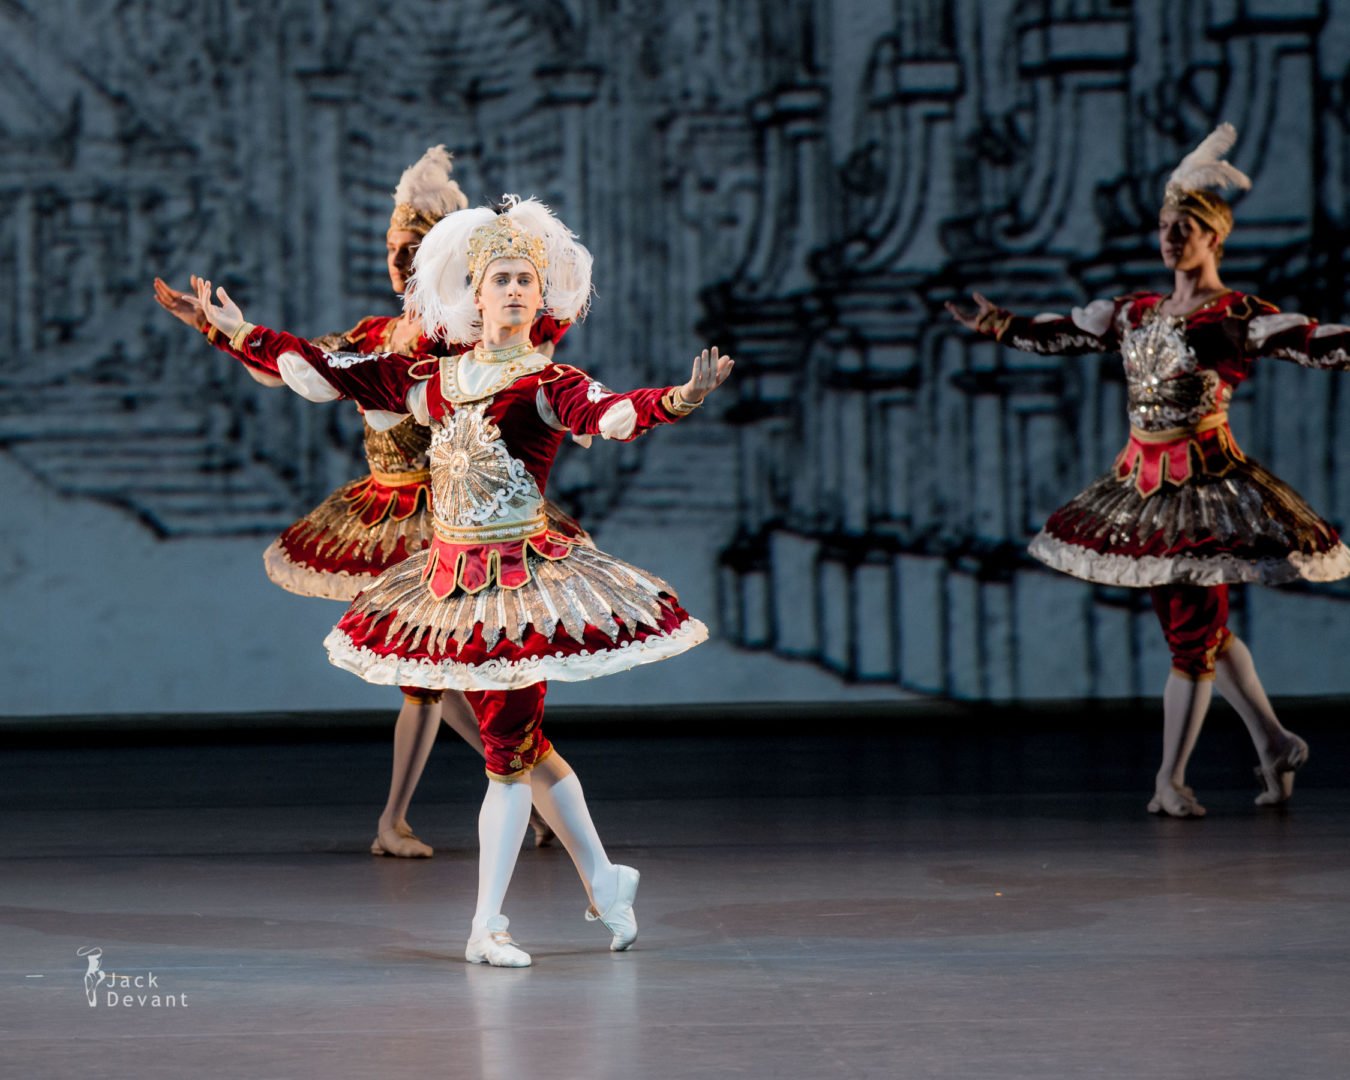 Philipp Stepin, Soslan Kulaev, Denis Zainetdinov, Evgeny Konovalov, Alexander Saveliev, Vasily Tkachenko in Divertissement of the King, music by Jean-Philippe Rameau, choreography by Maxim Petrov 2